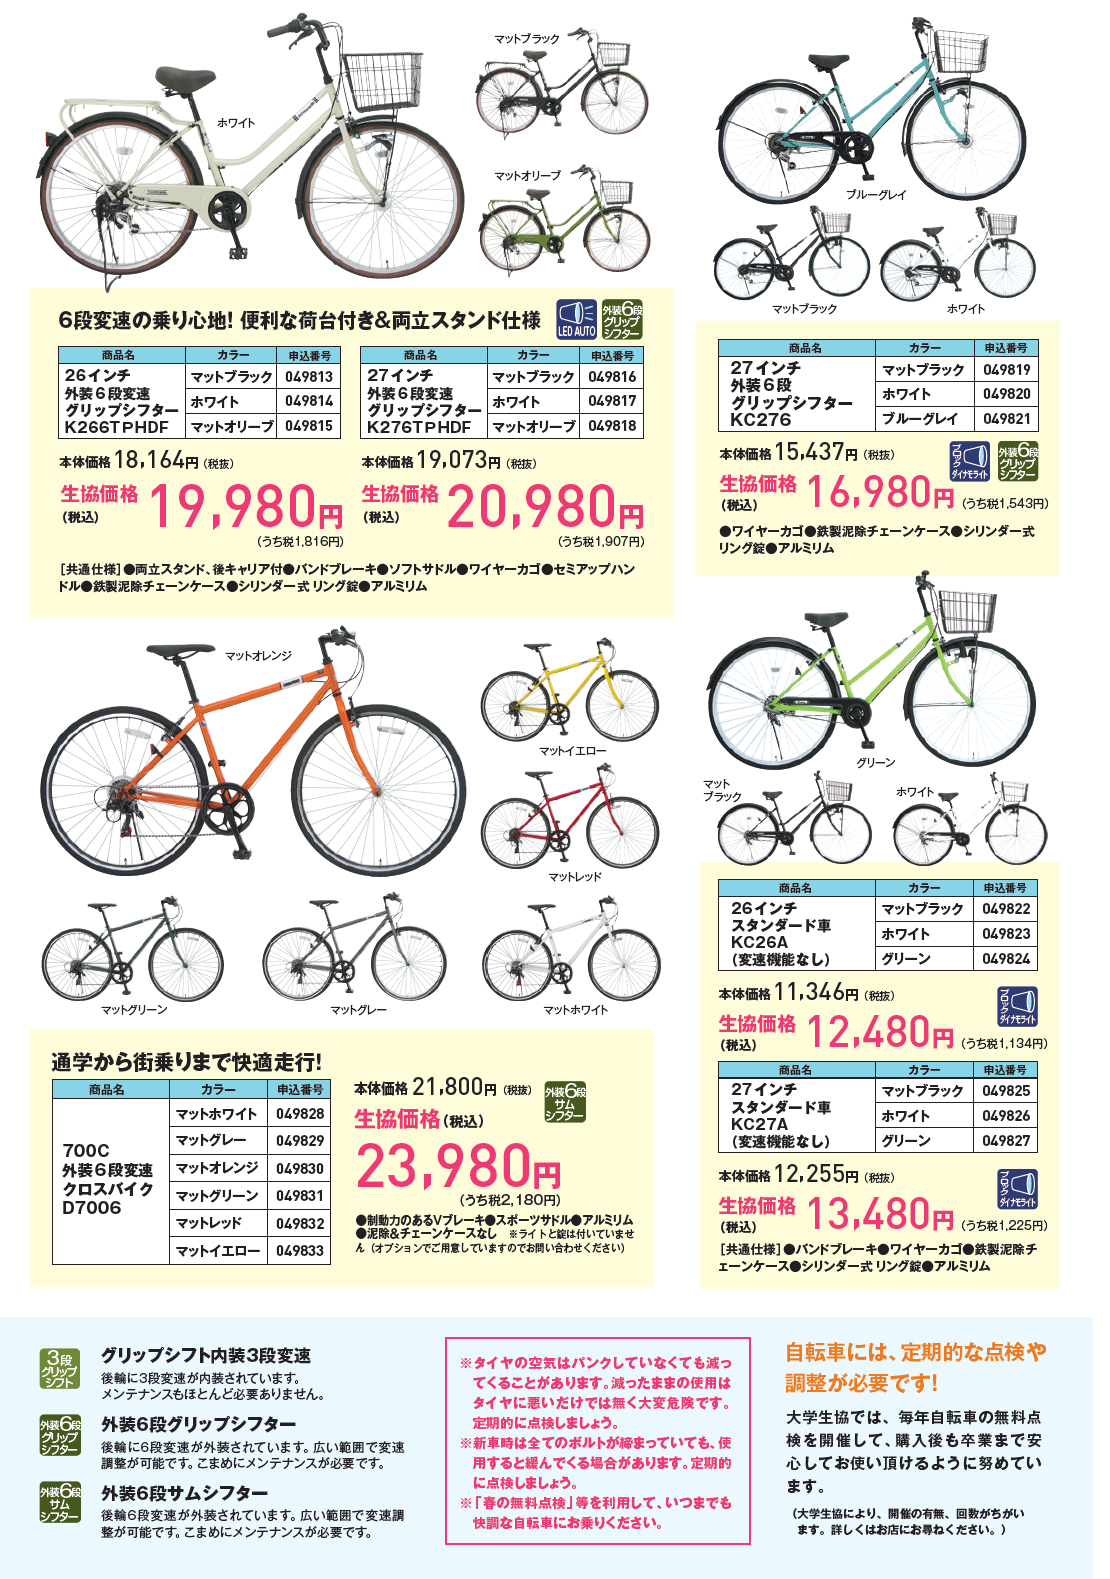 bicycle2021-3.png